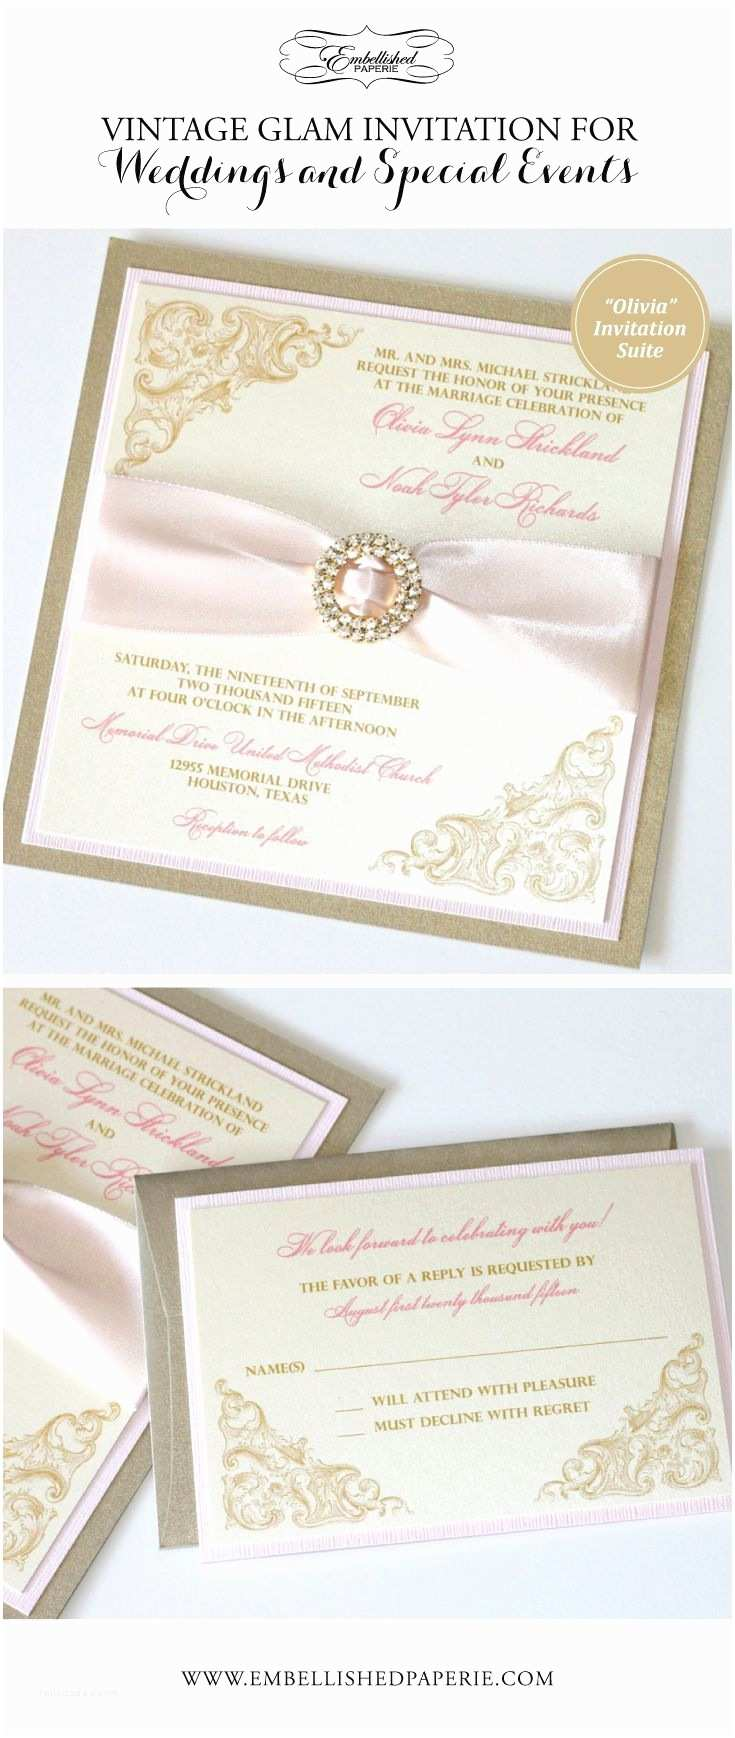 Blush and Gold Wedding Invitations Elegant Wedding Invitation Vintage Wedding Invitation